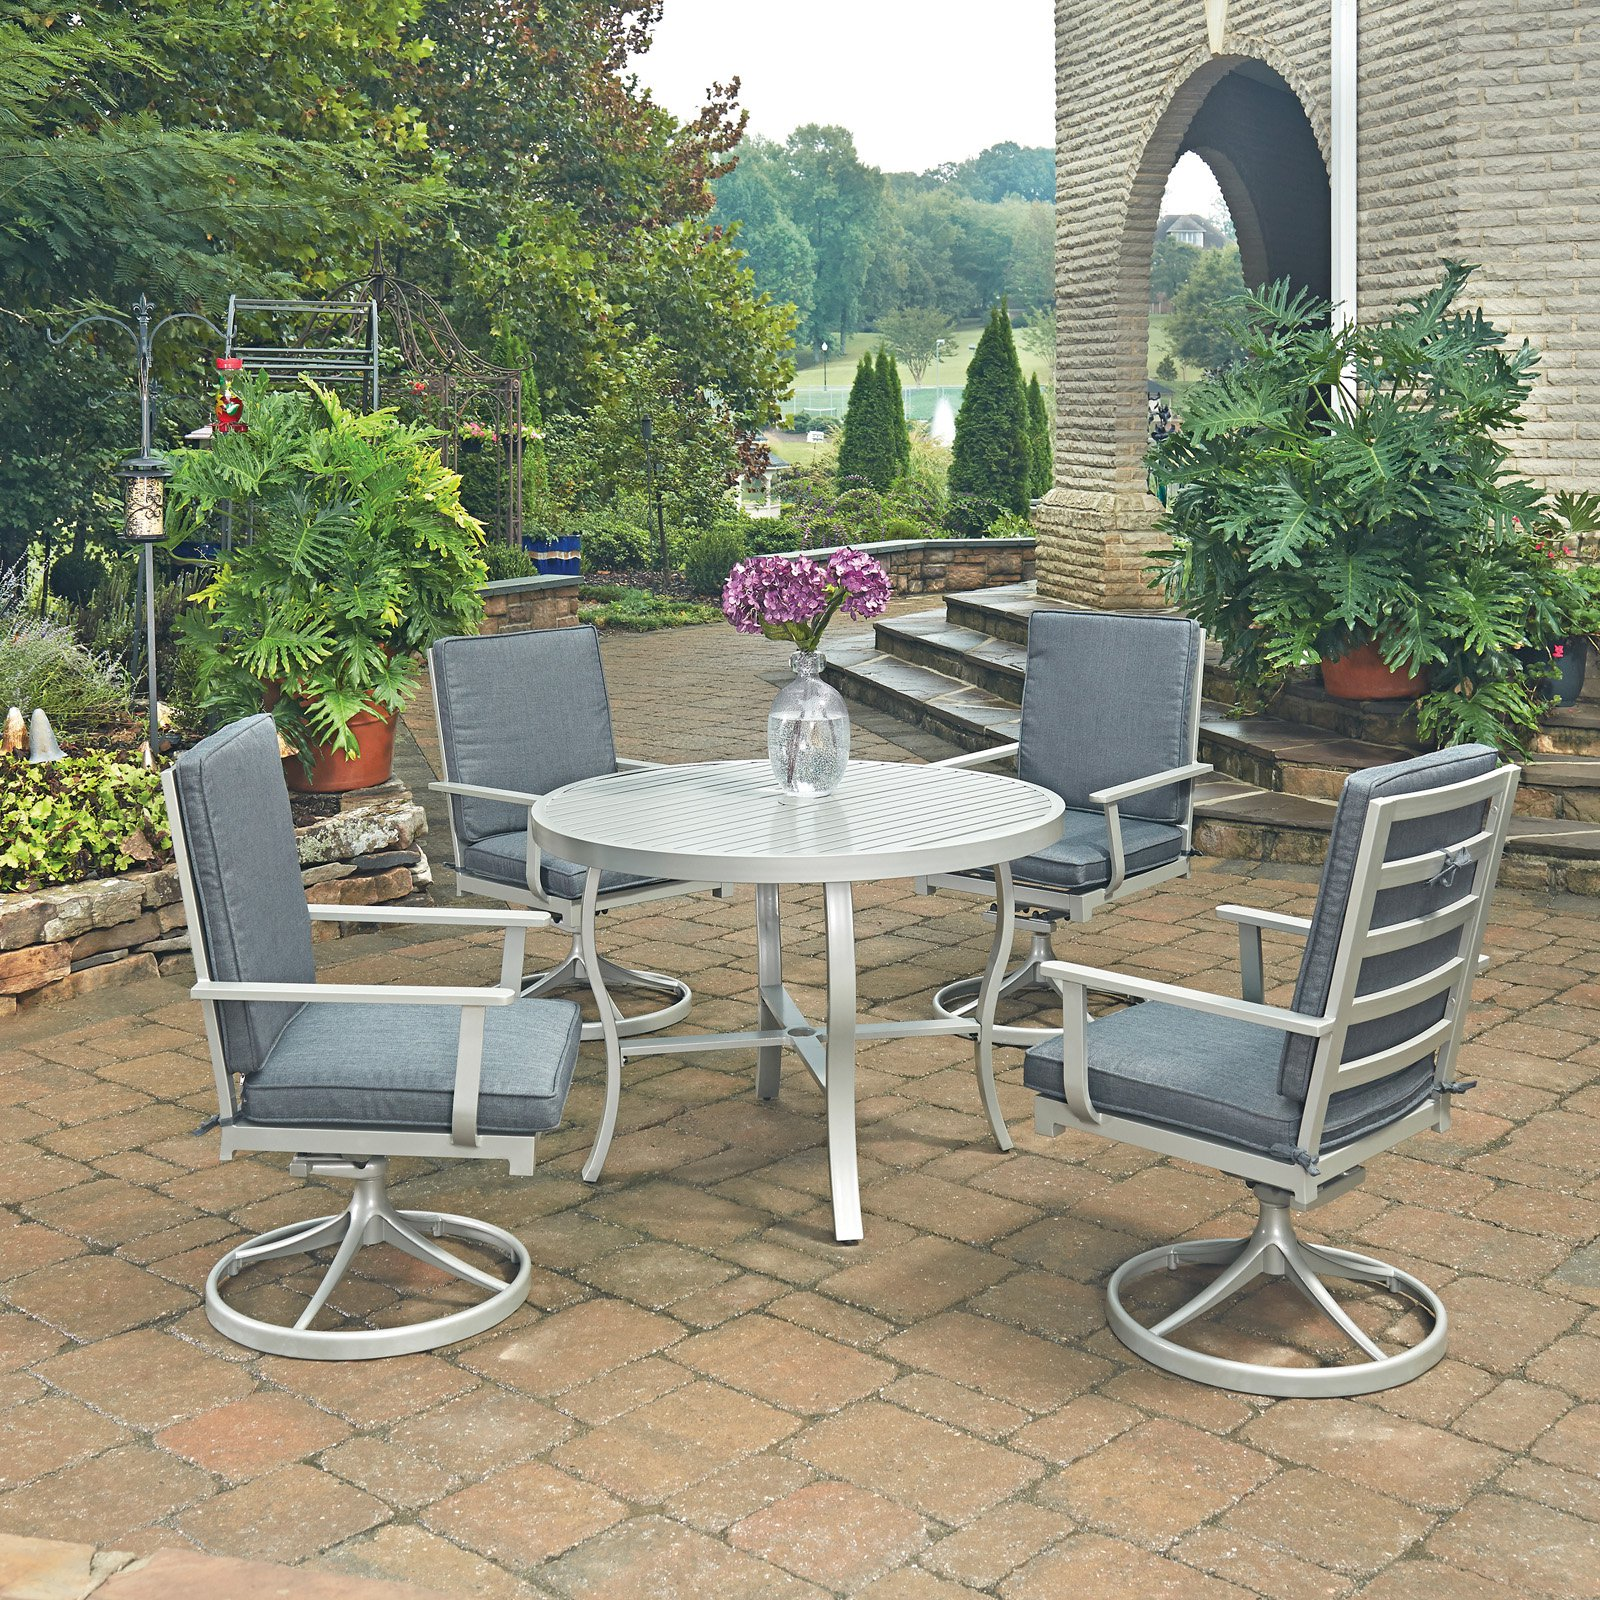 Home Styles South Beach 5 Piece 48 in. Round Outdoor Dining Set